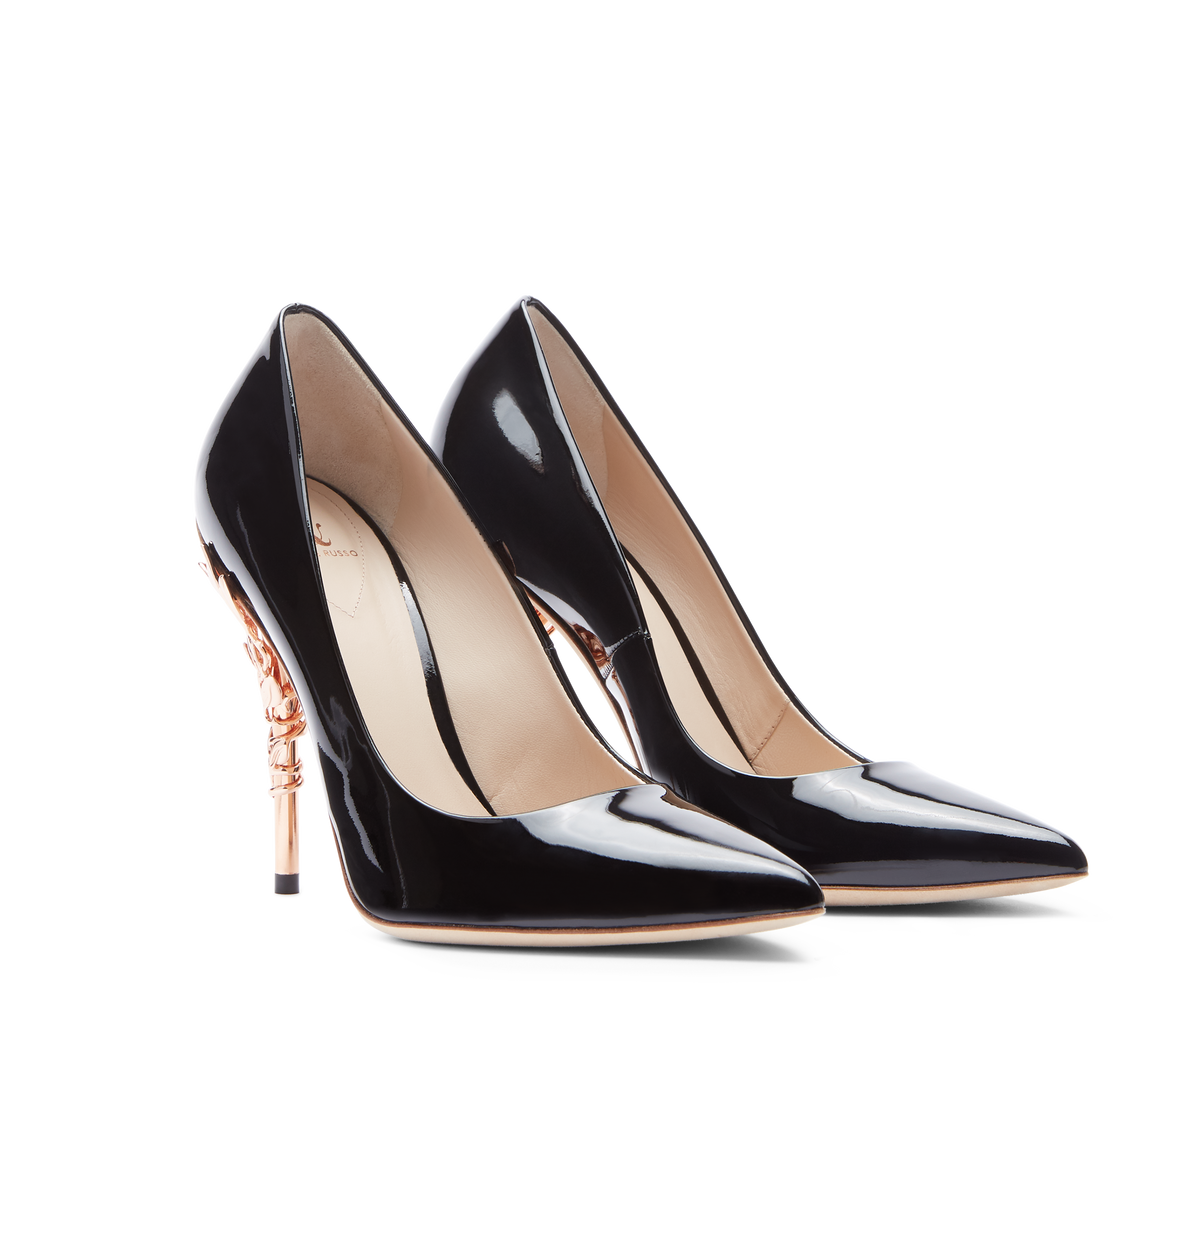 Black Patent Leather Eden Heels with Rose Gold Leaves